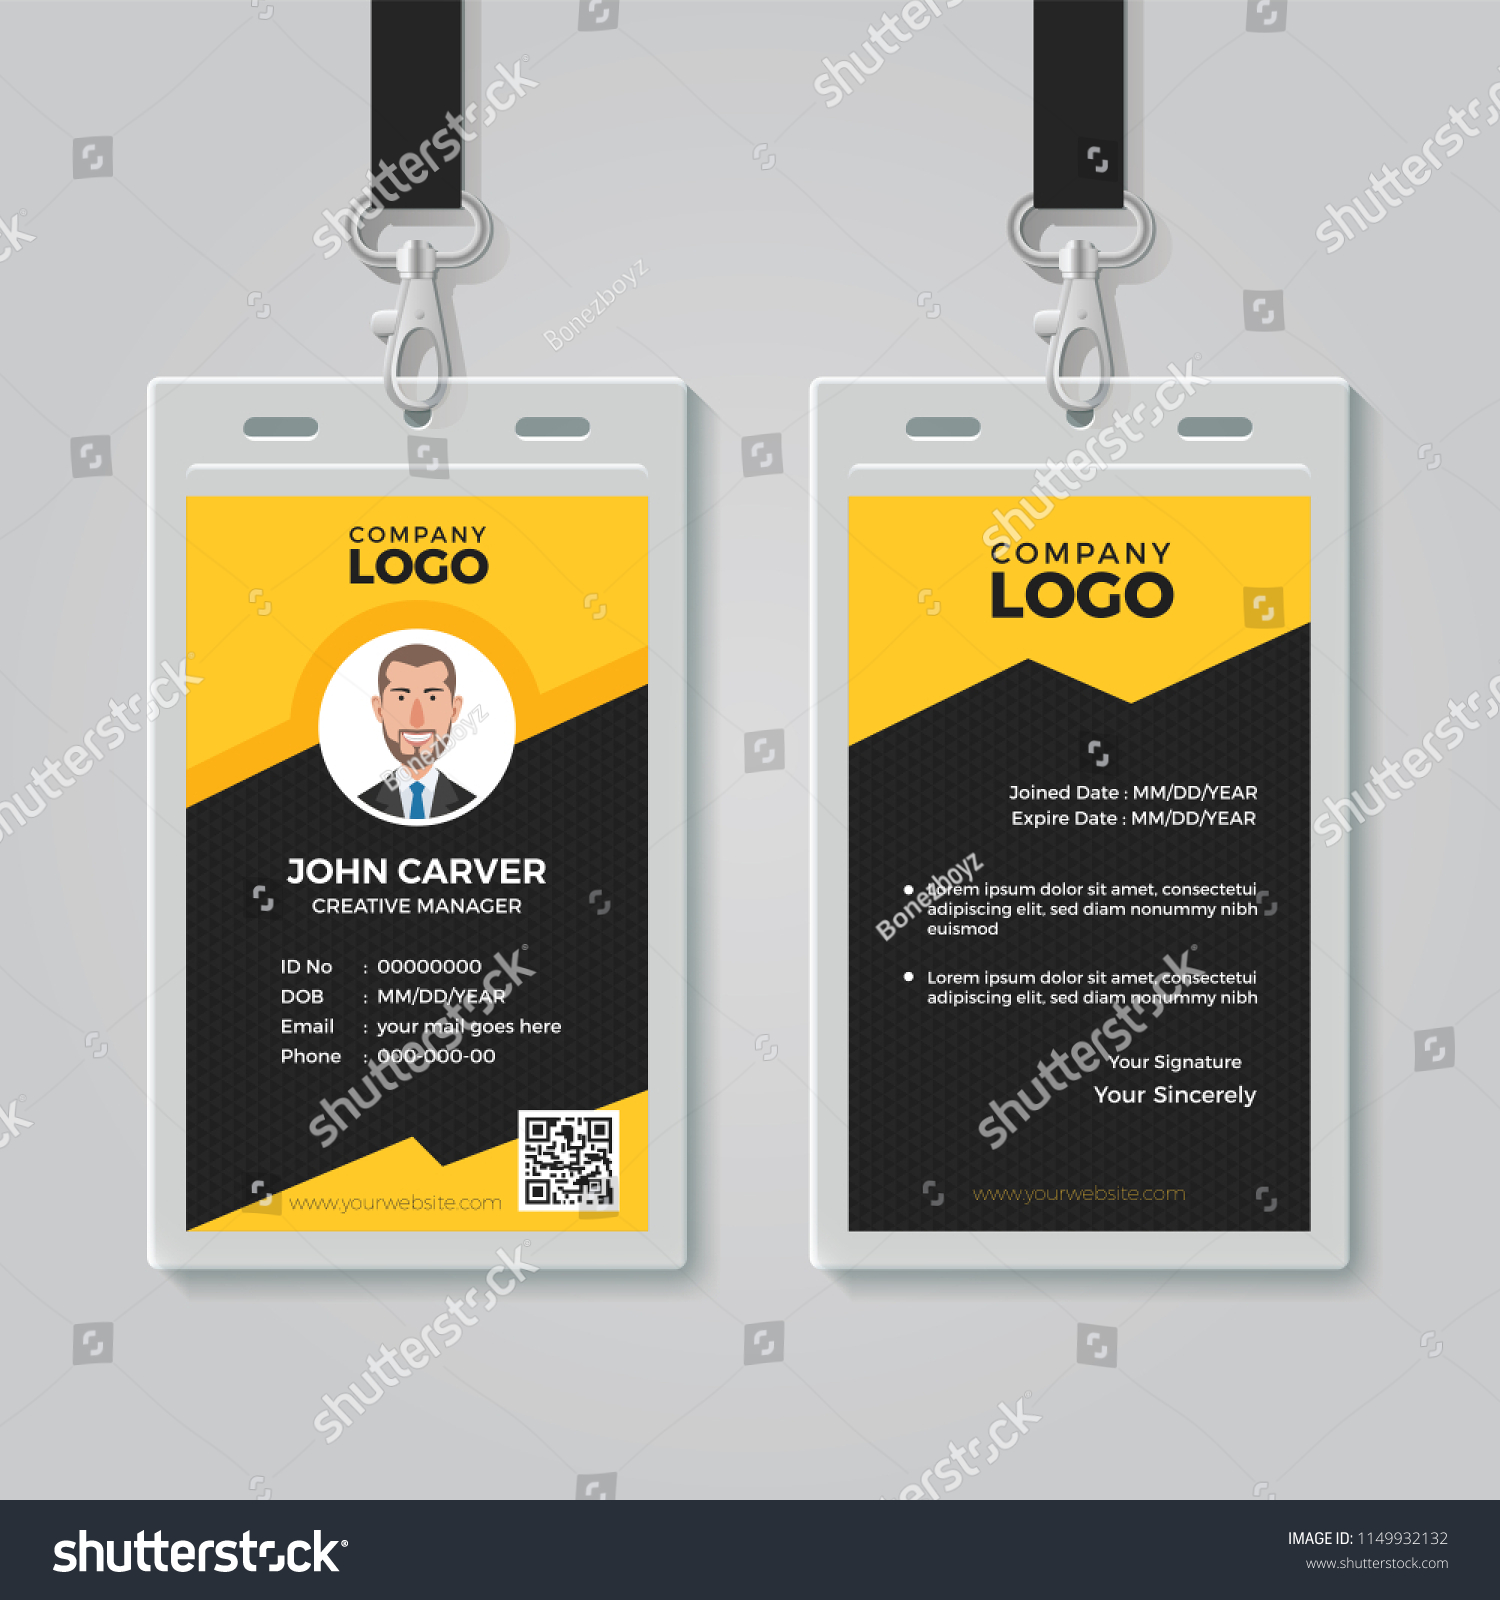 Stylish Yellow ID Card Design Template Stock Vector (Royalty Free ...